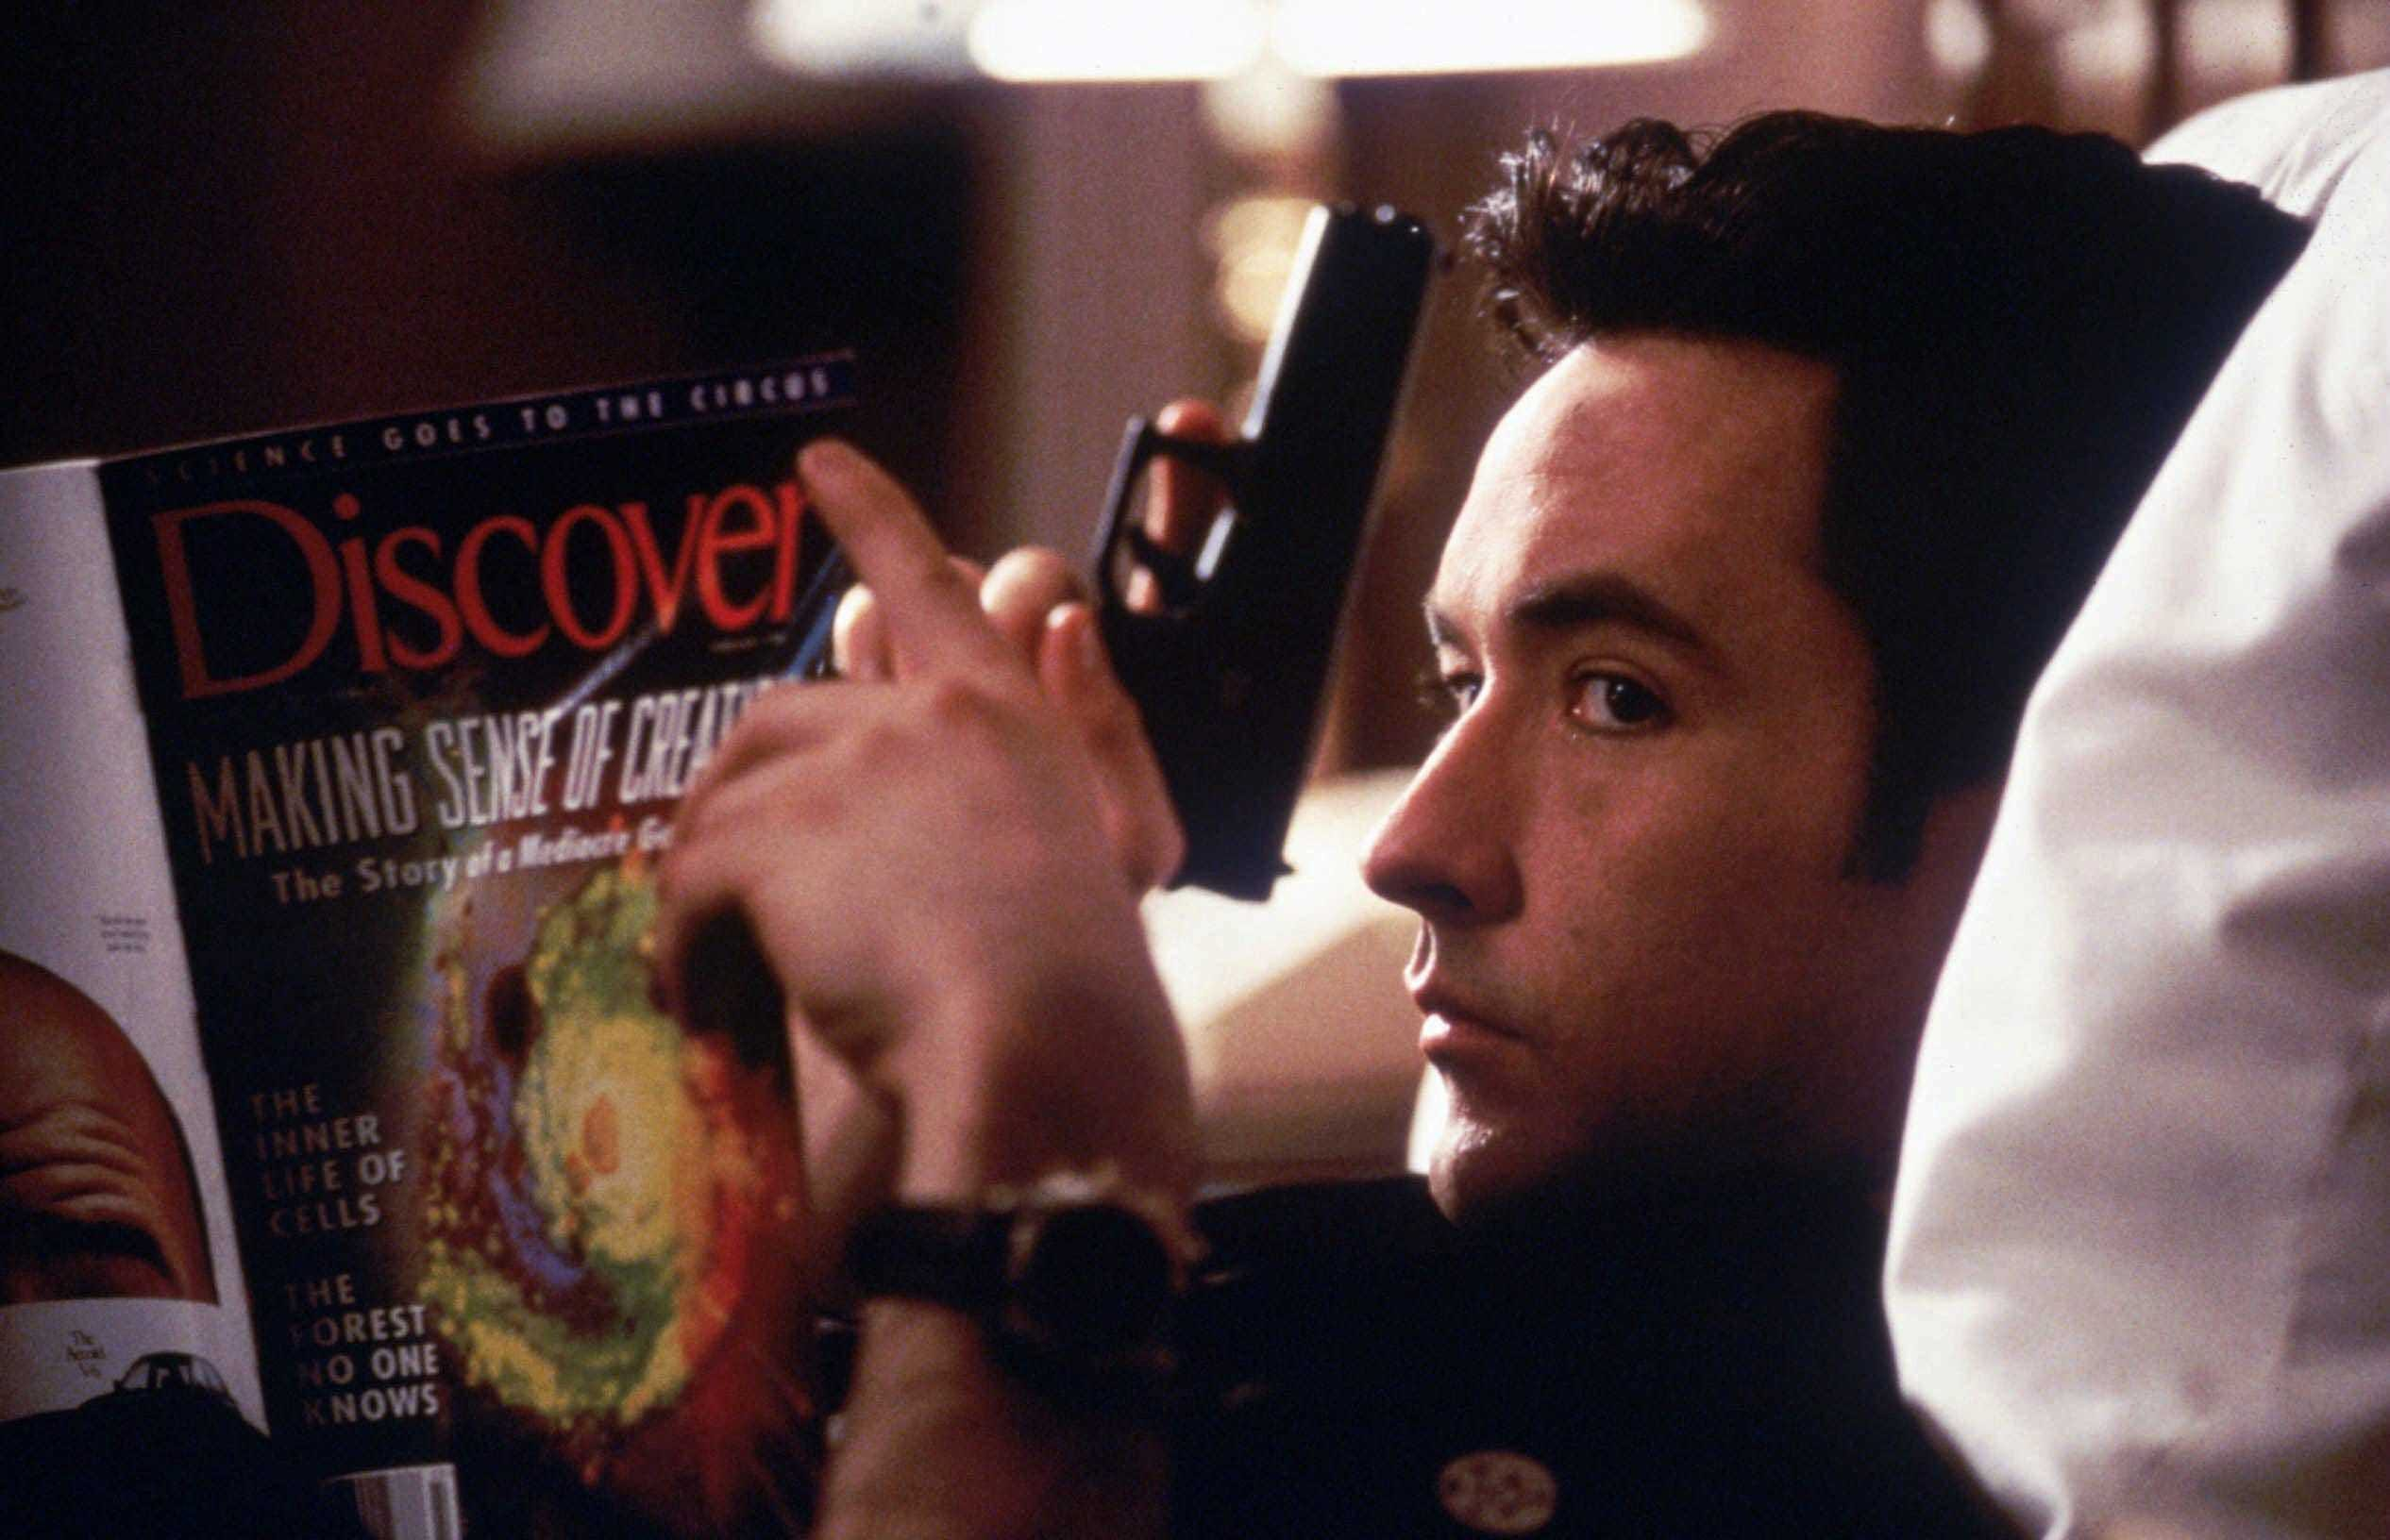 John Cusack stars as Martin, a hired gun who returns to Grosse Pointe to combine a contract job and his 10-year high school reunion.